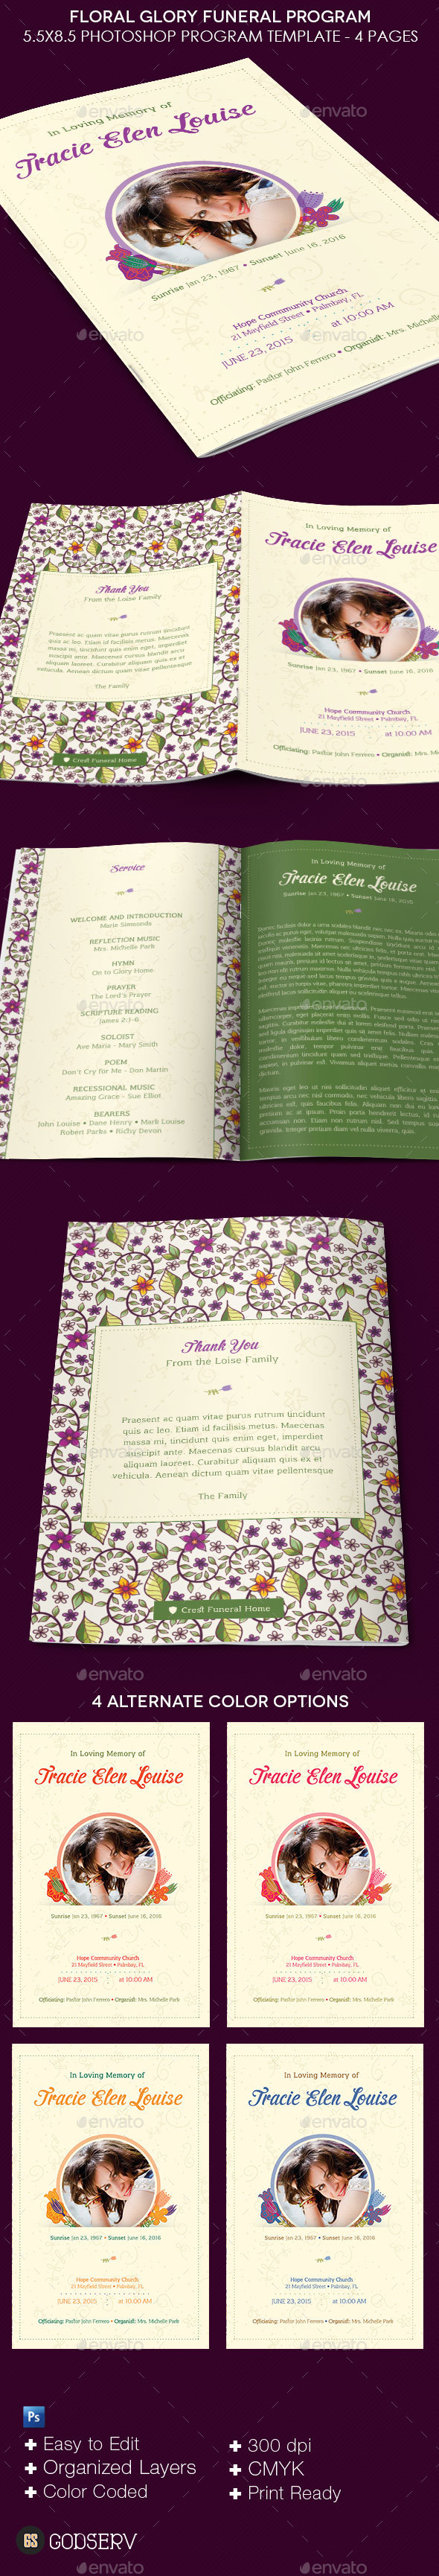 Floral Glory Funeral Program Template - Informational Brochures